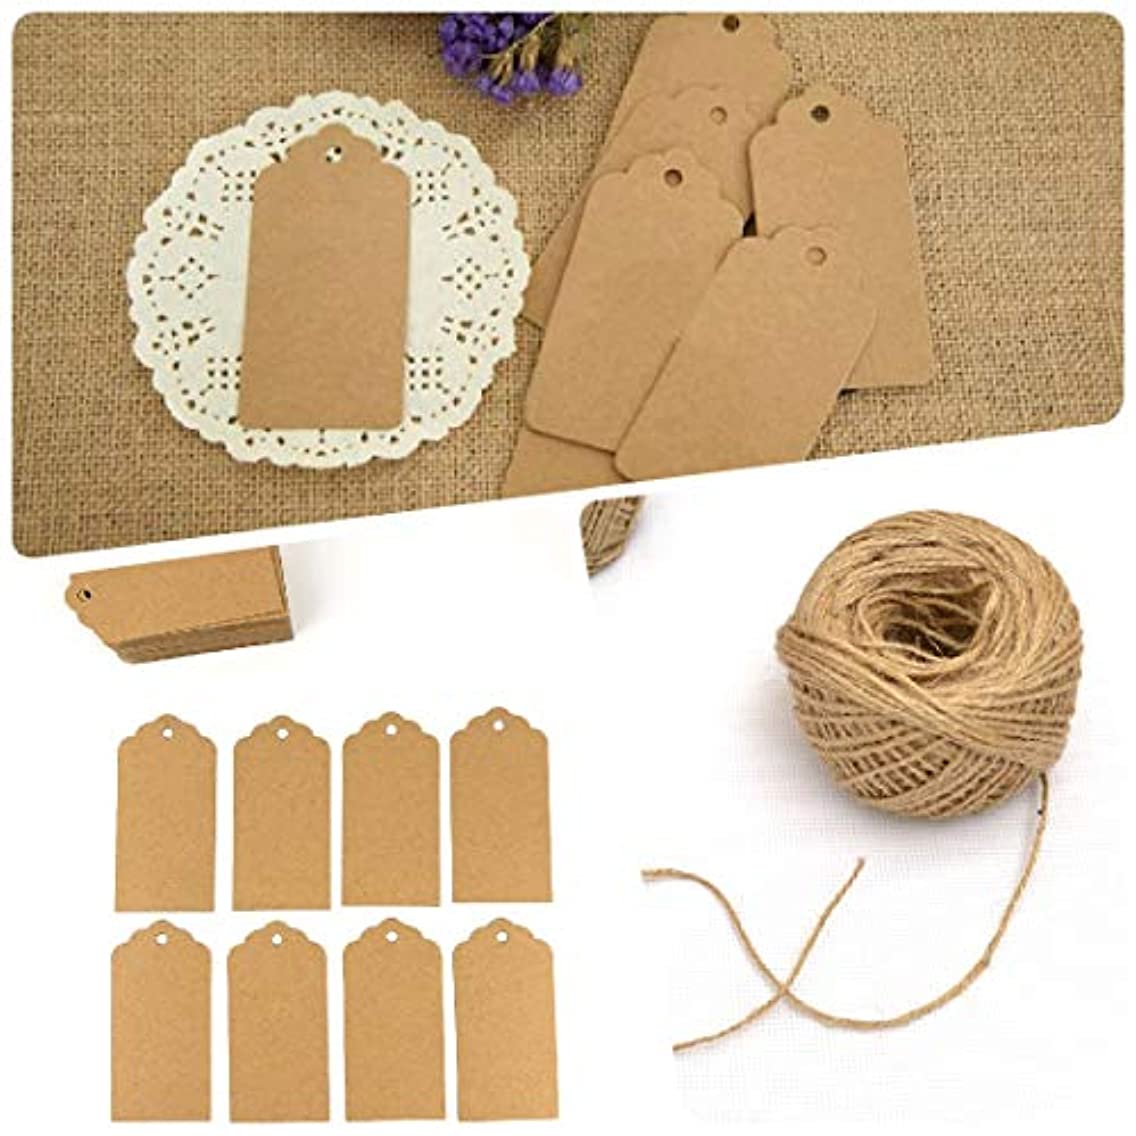 100 PCS Large Gift Tags Kraft Paper Tags for Wedding,Clothing Price Tags Hang Tags Label Tags with 100 Feet Natural Jute Twine